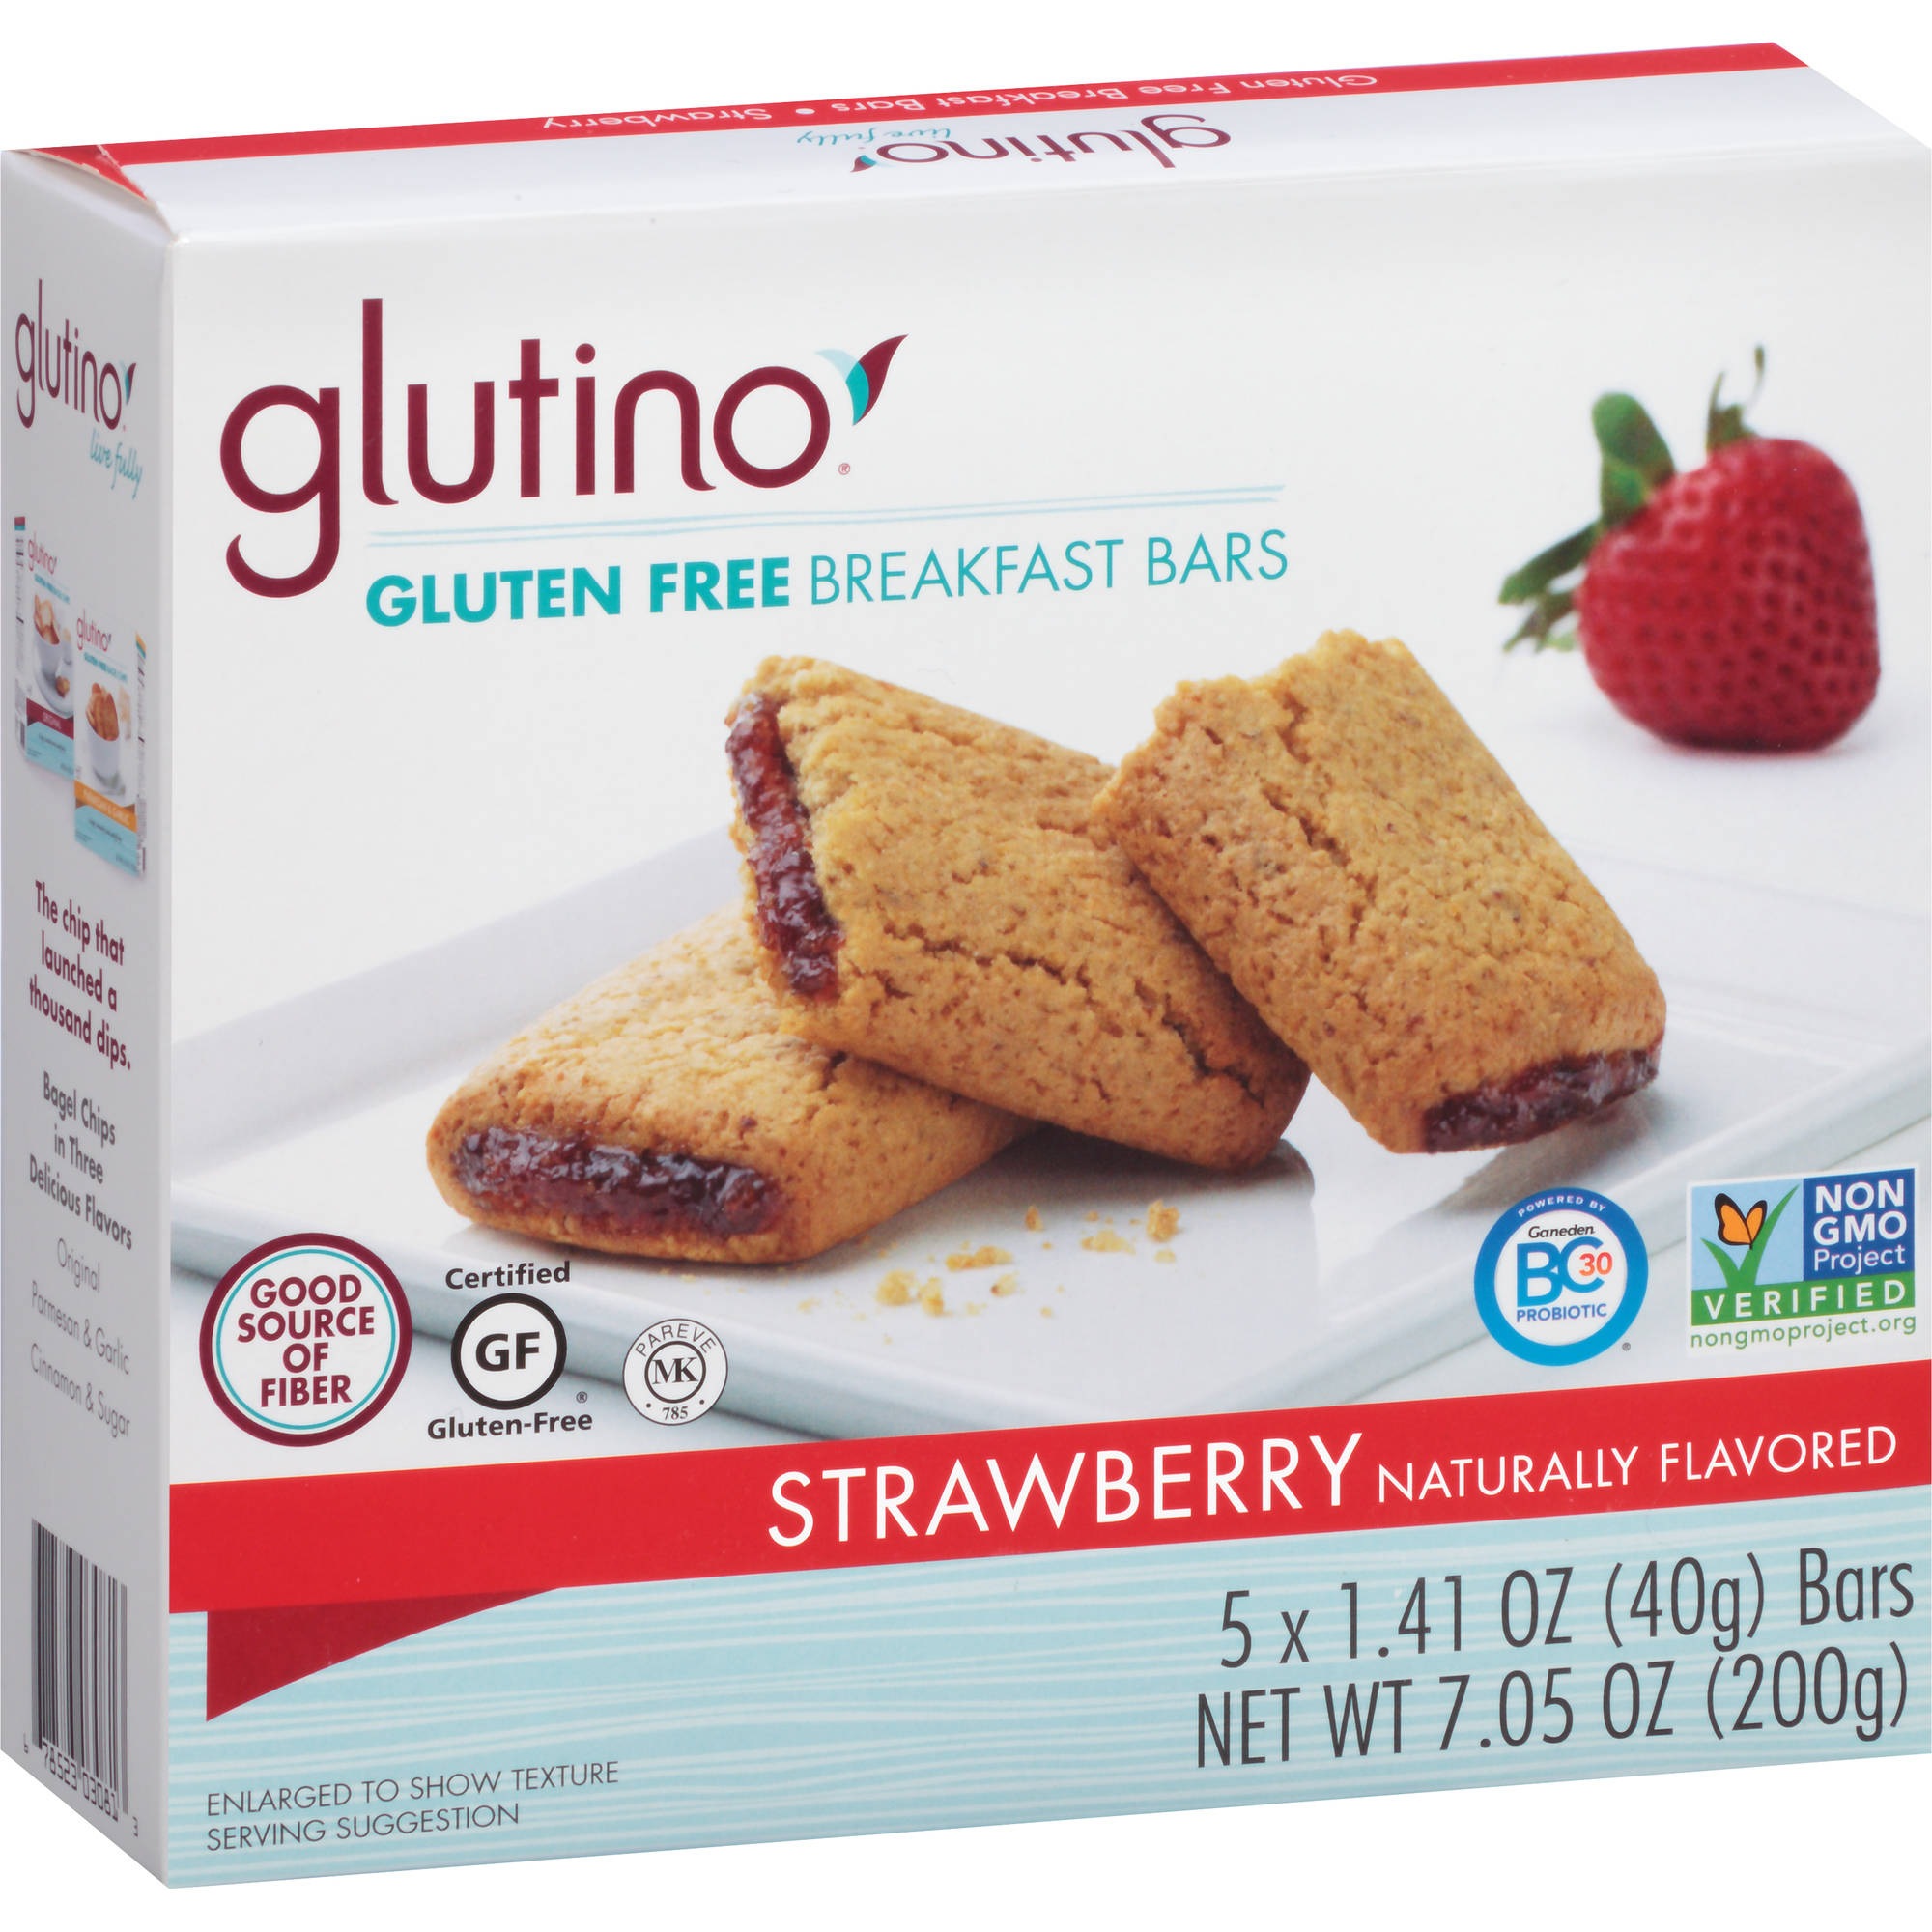 Glutino Strawberry Gluten Free Breakfast Bars, 1.41 oz, 5 count